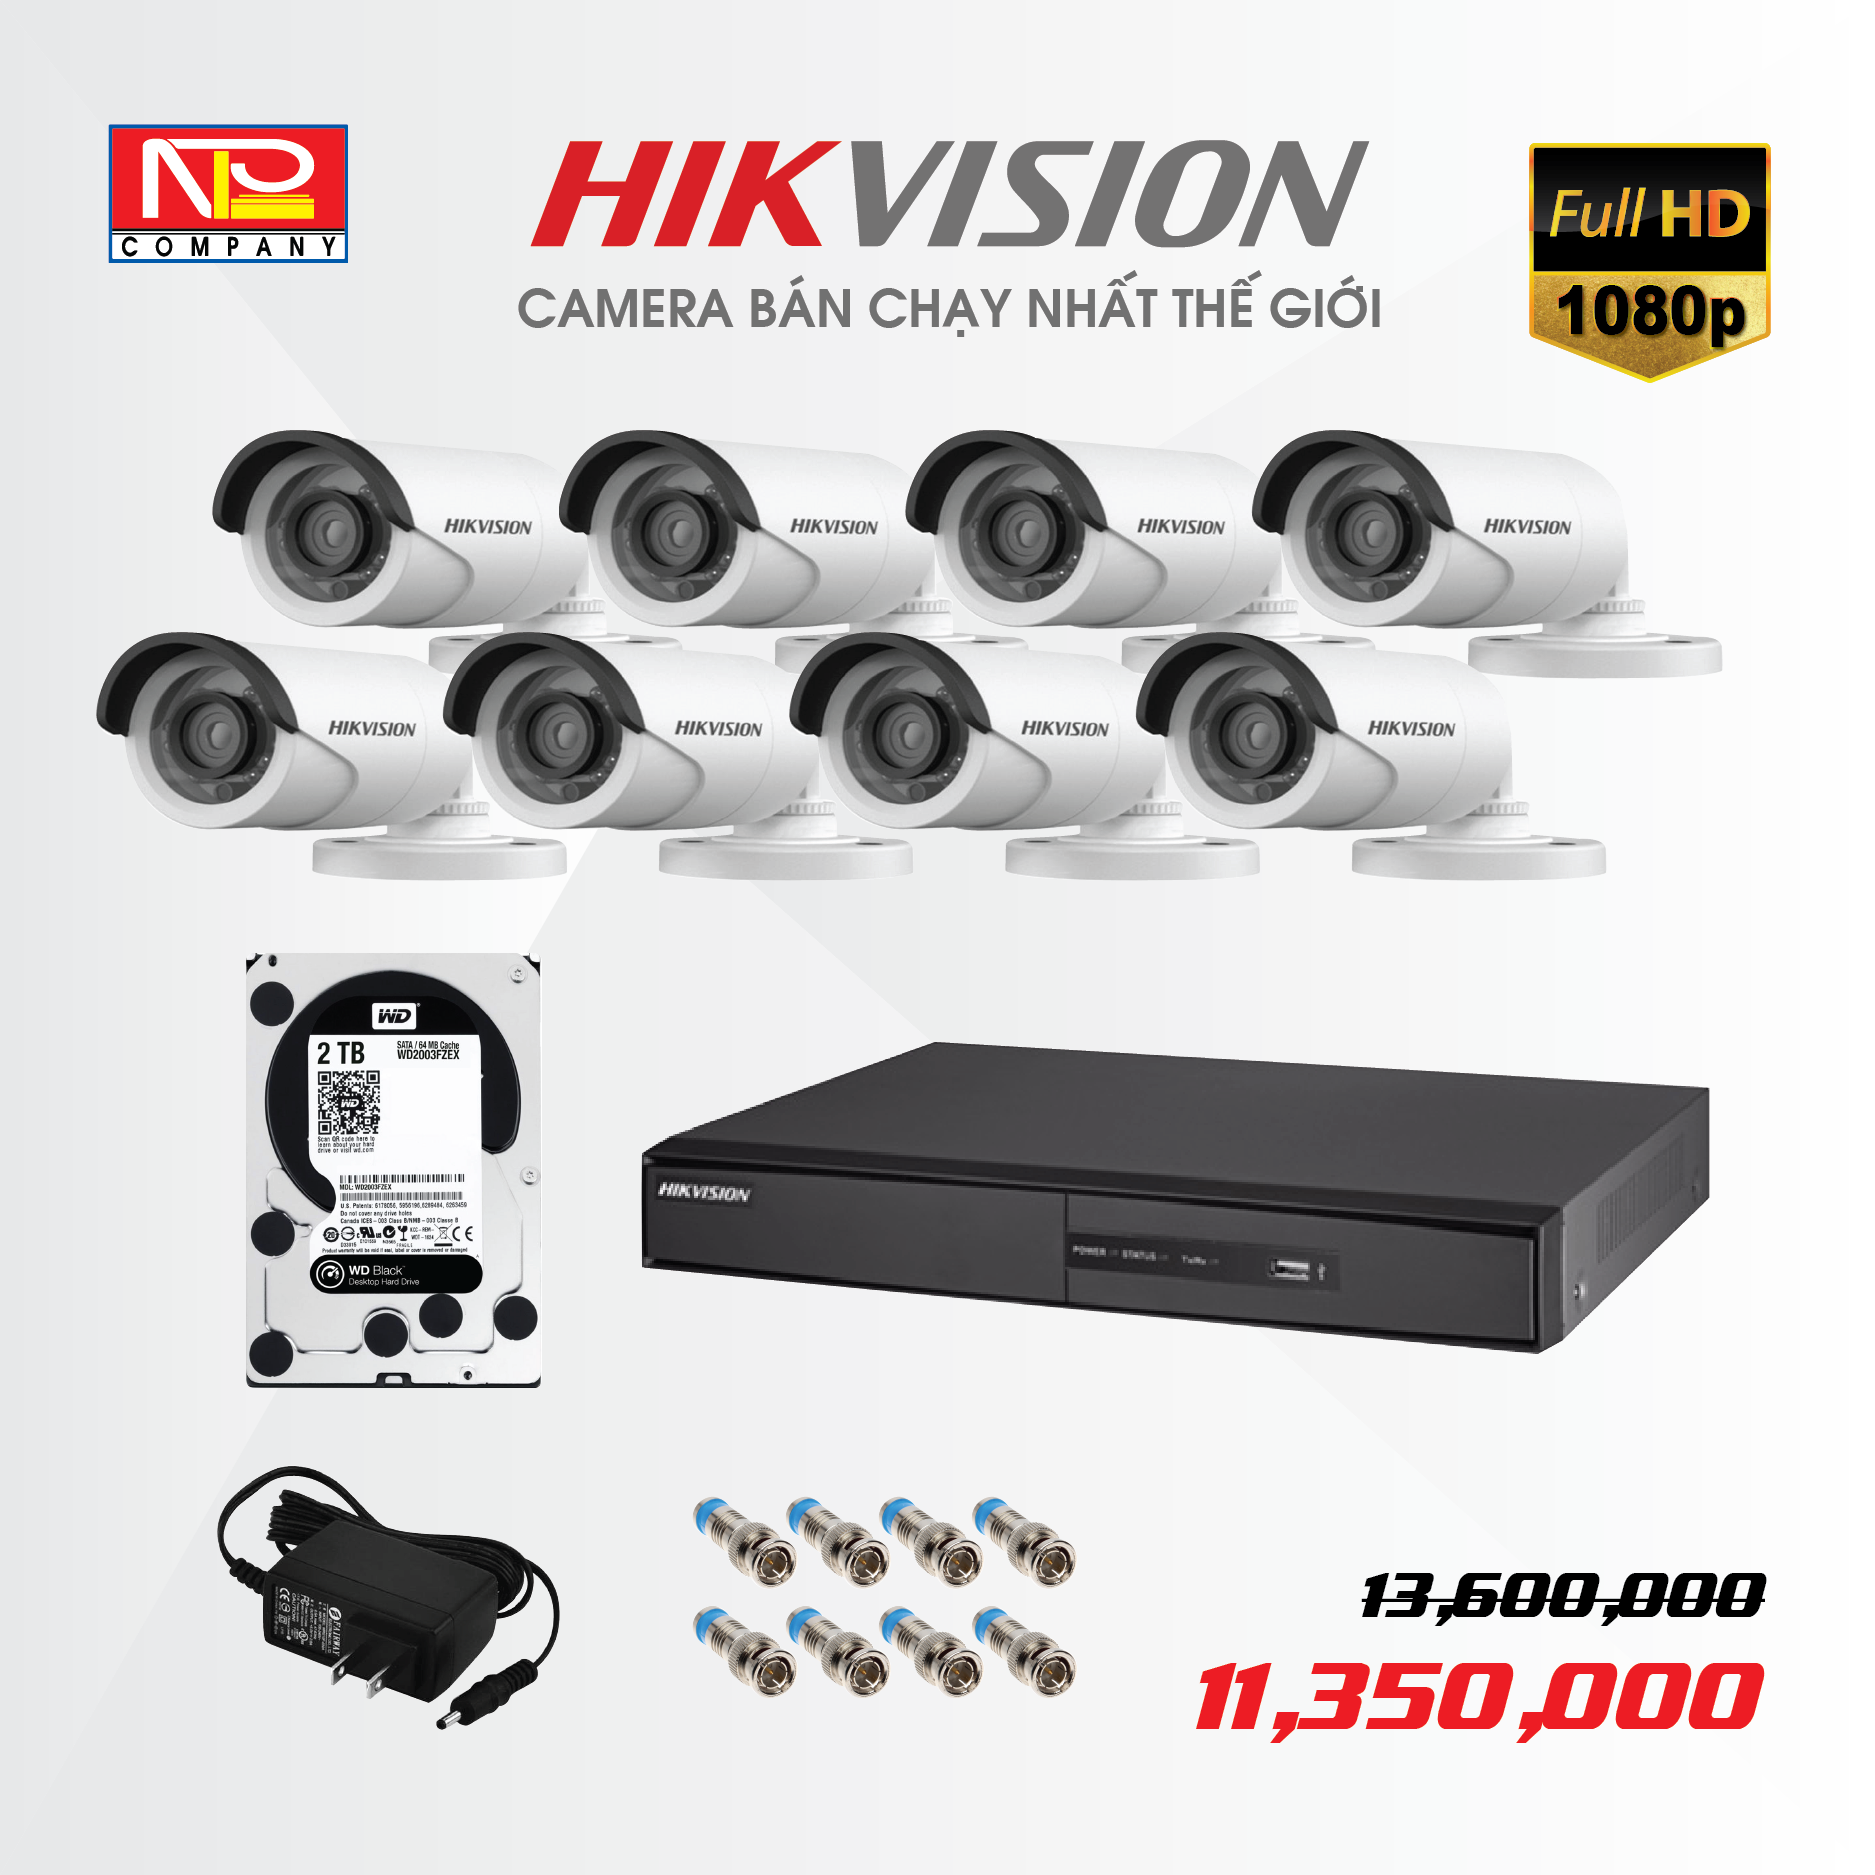 Bộ kit 8 camera analog Hikvision Full HD1080P